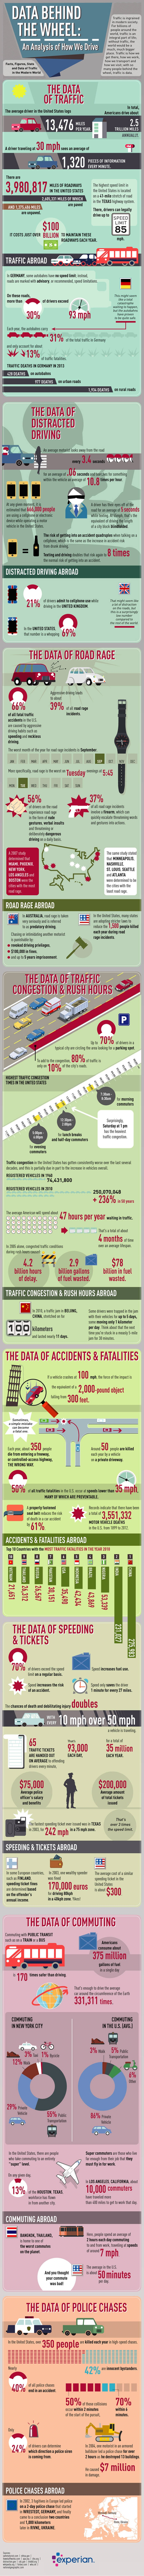 Interesting Things About Driving And Traffic - Infographic